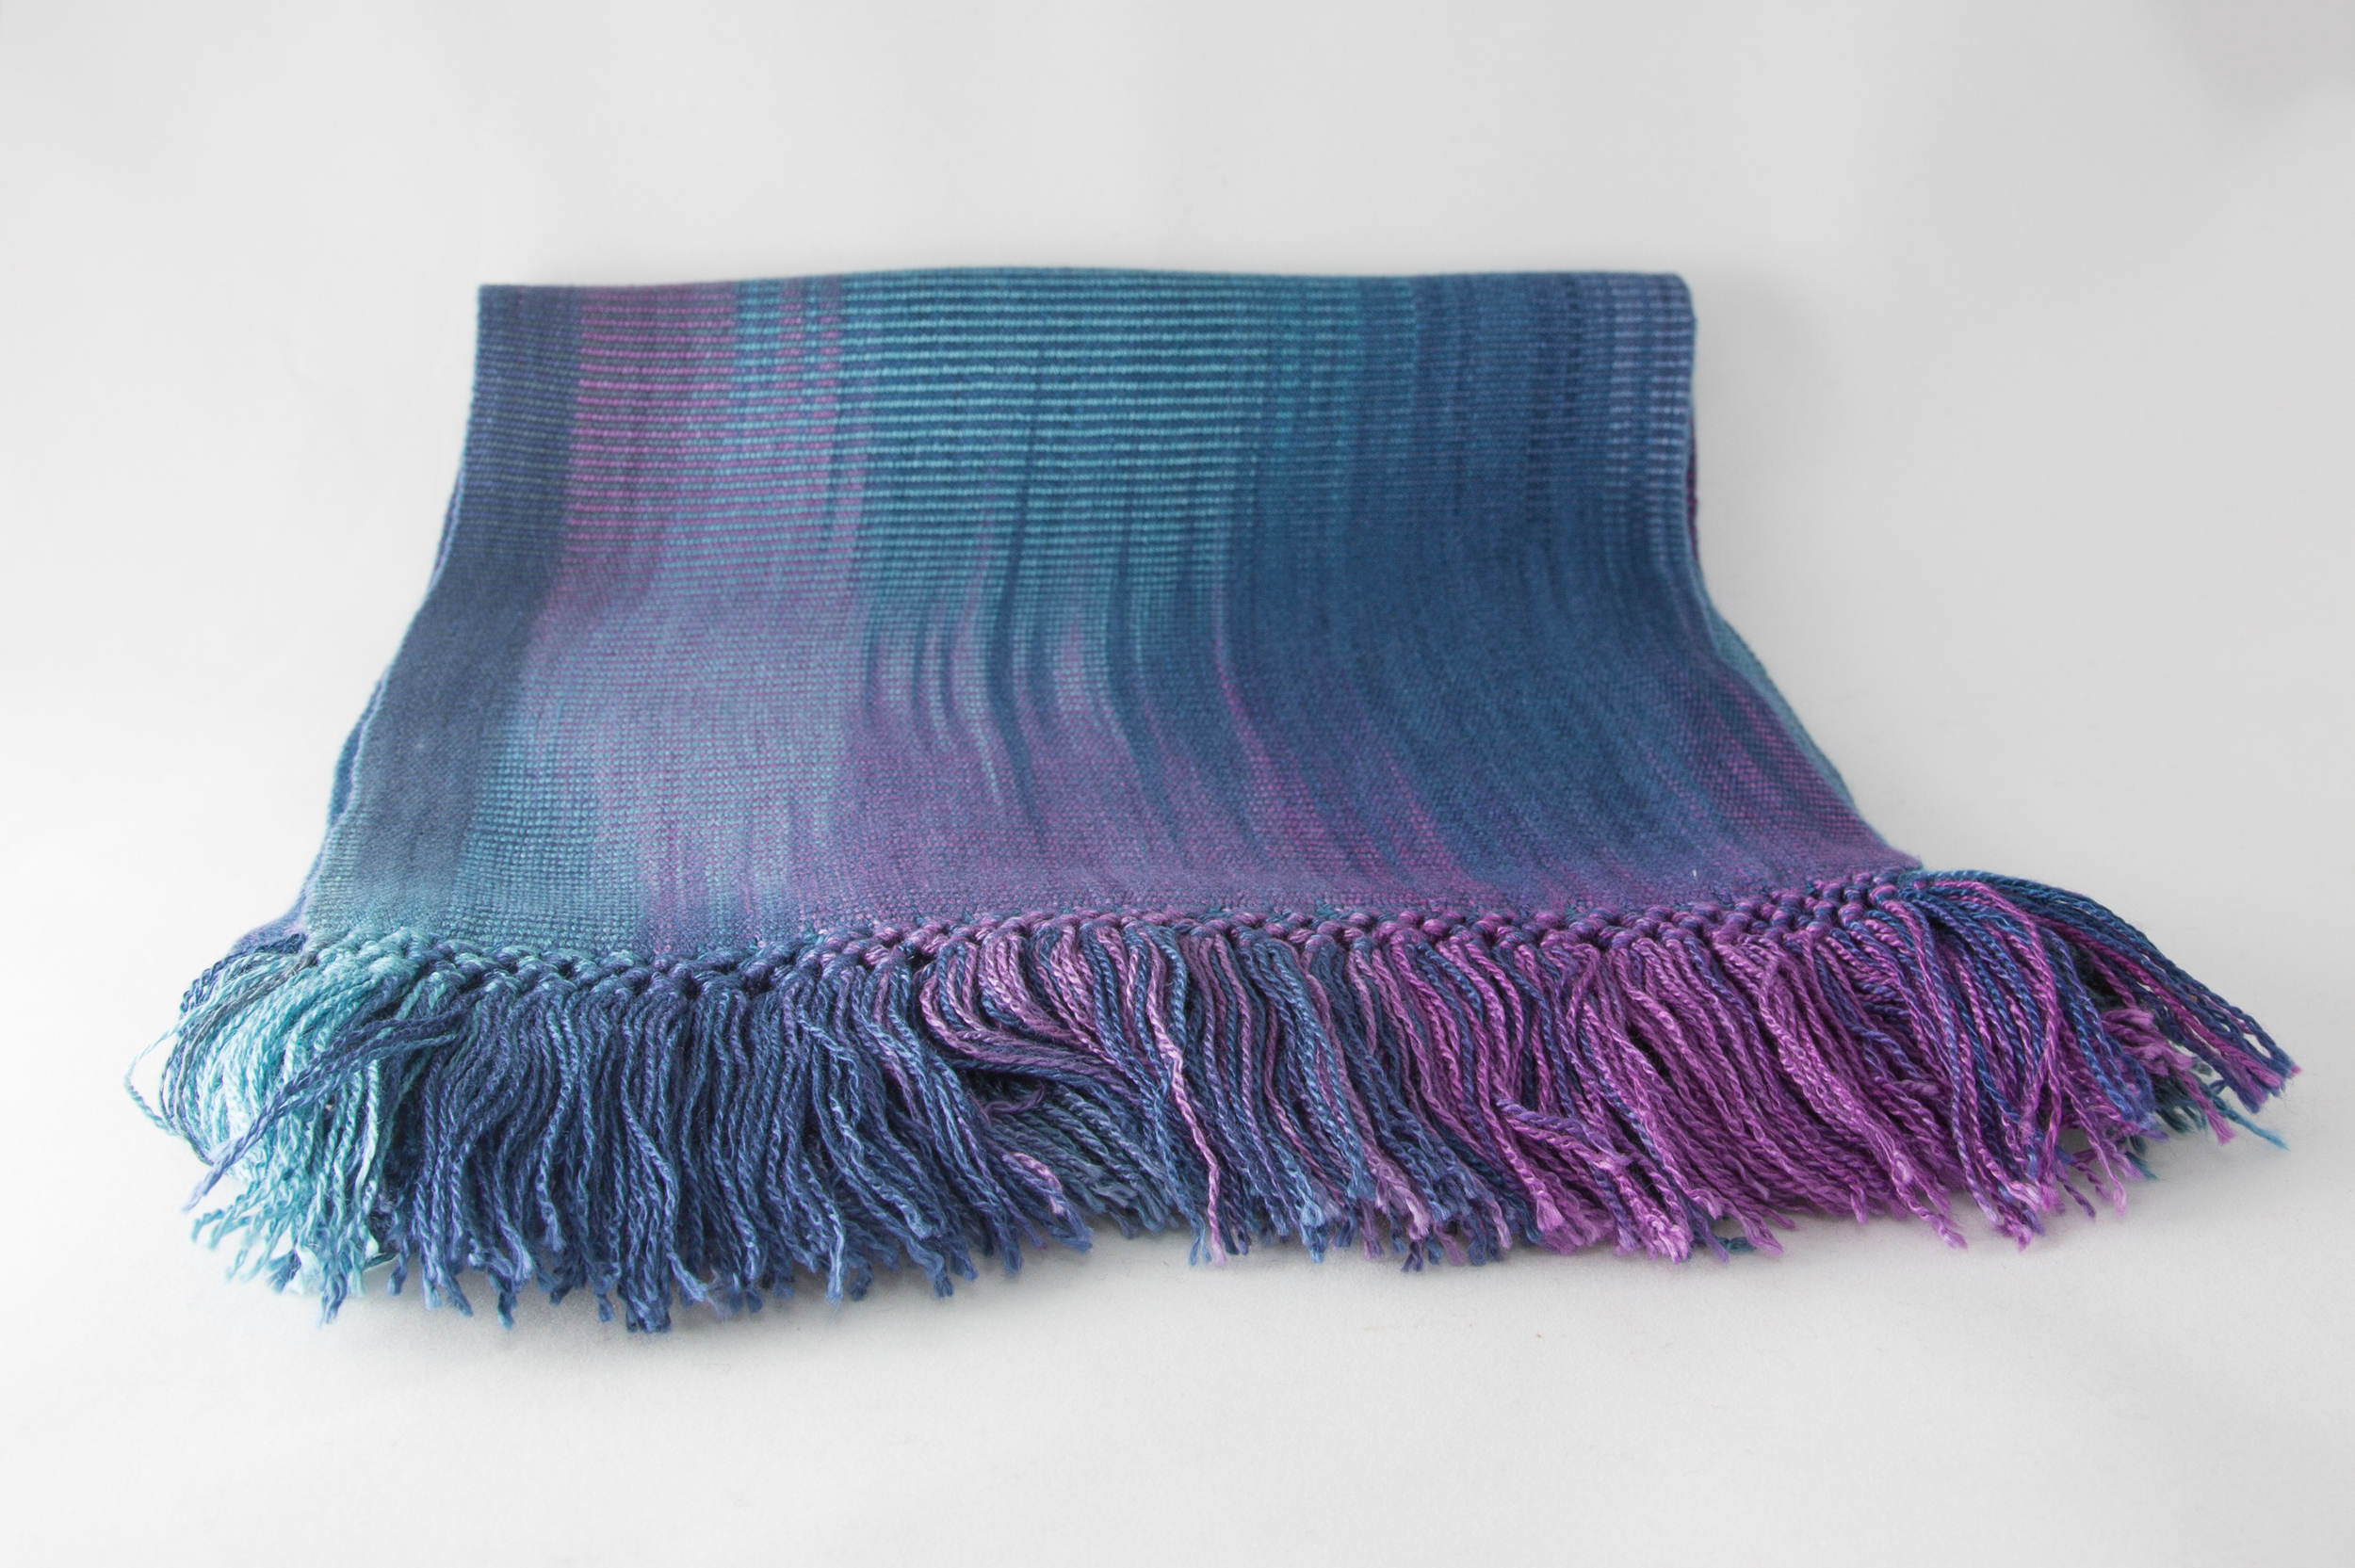 Blue & Purple Scarf   $39.00